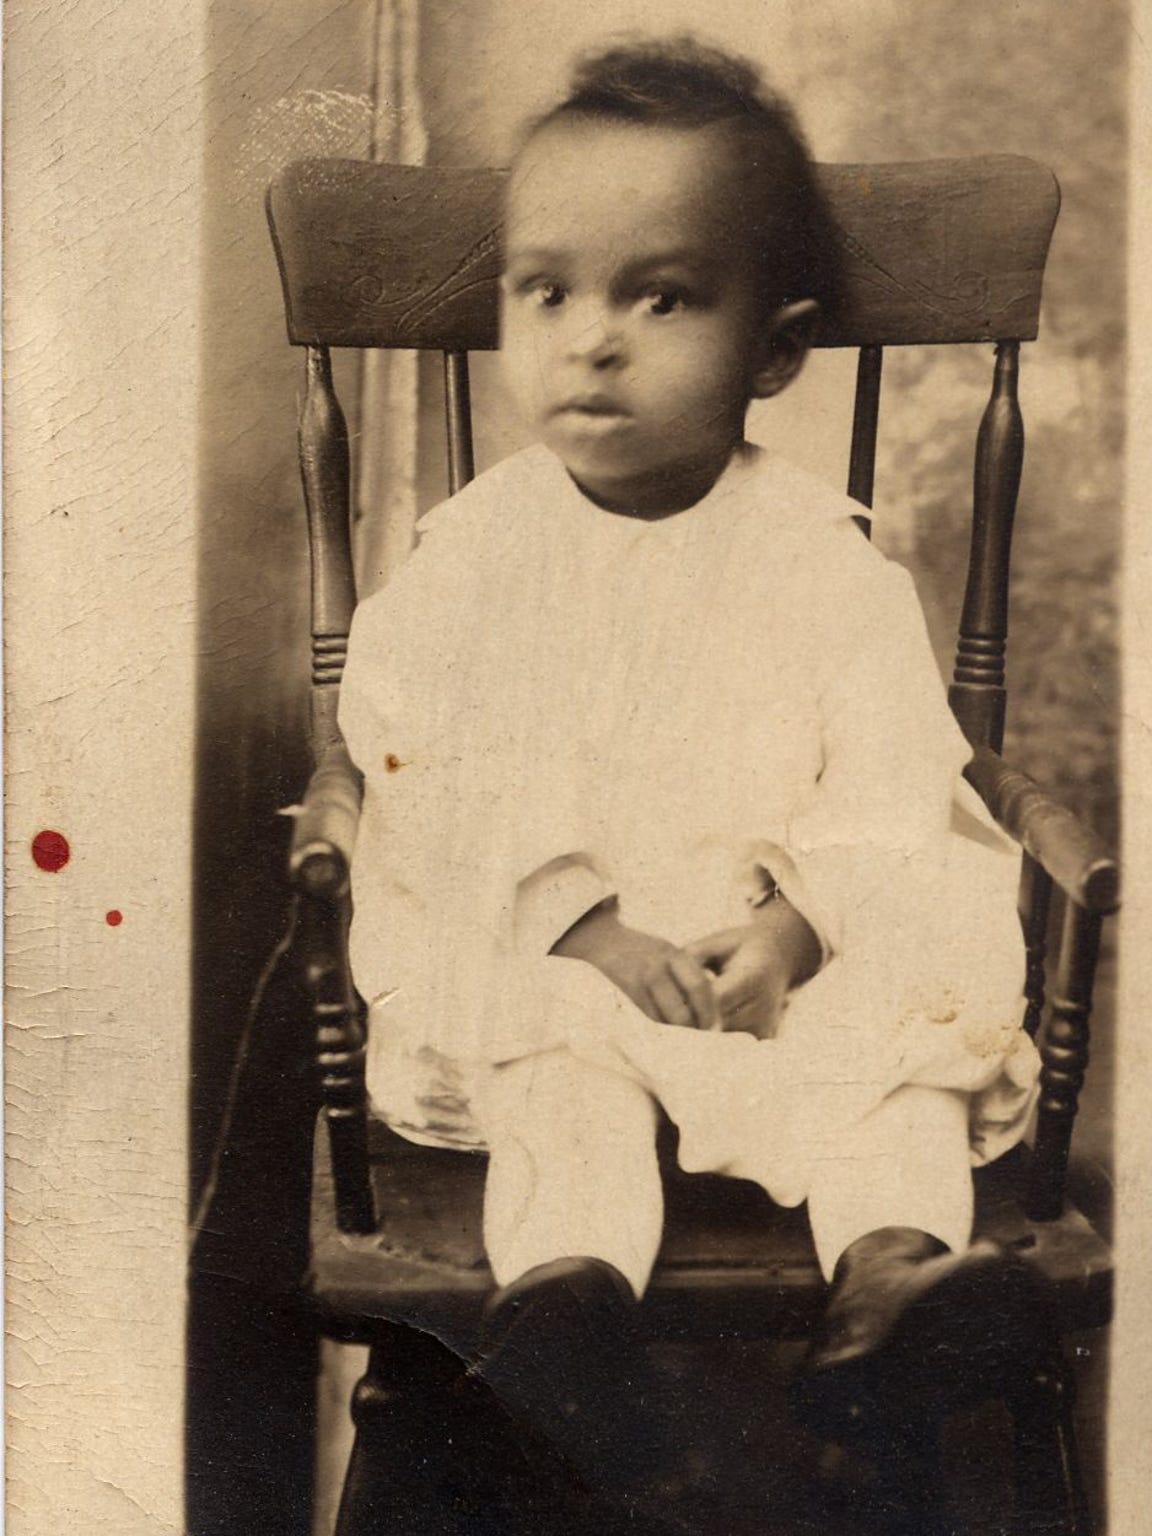 Childhood photo of George Warren Reed